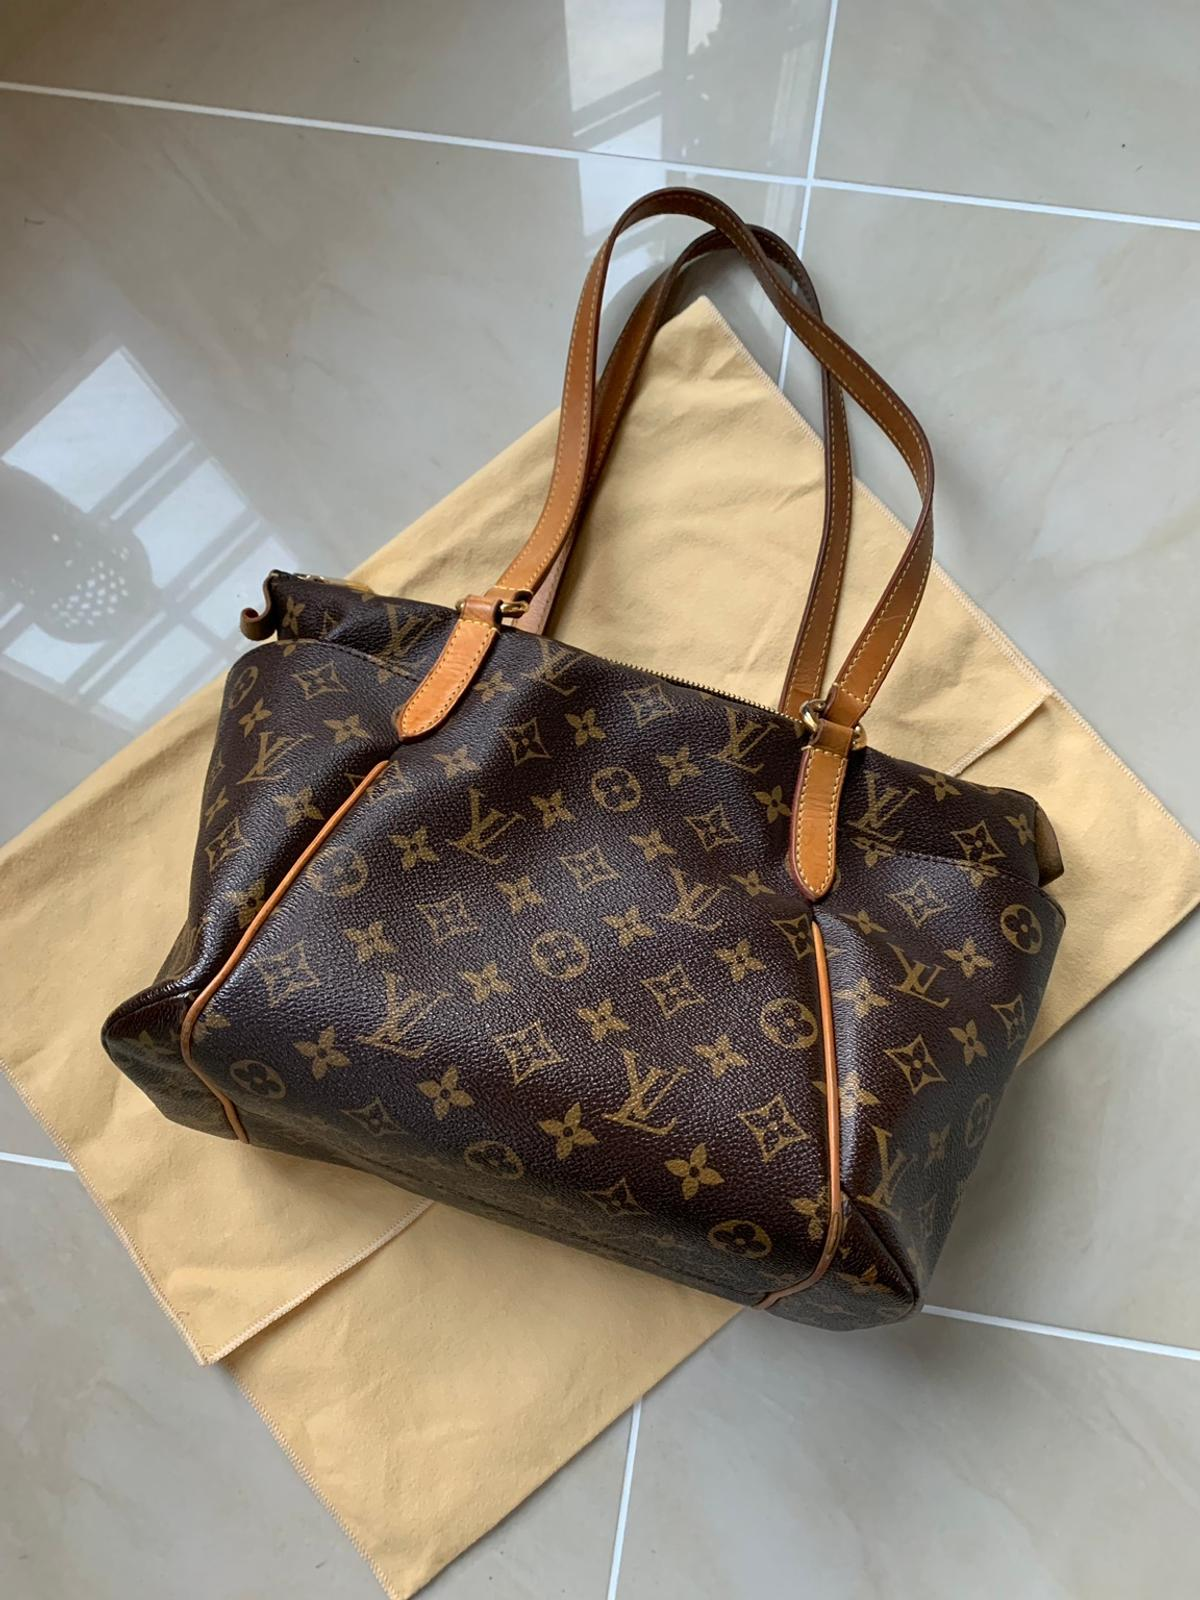 8b7acf93 Louis Vuitton Totally PM in KA7 Ayr for £400.00 for sale - Shpock